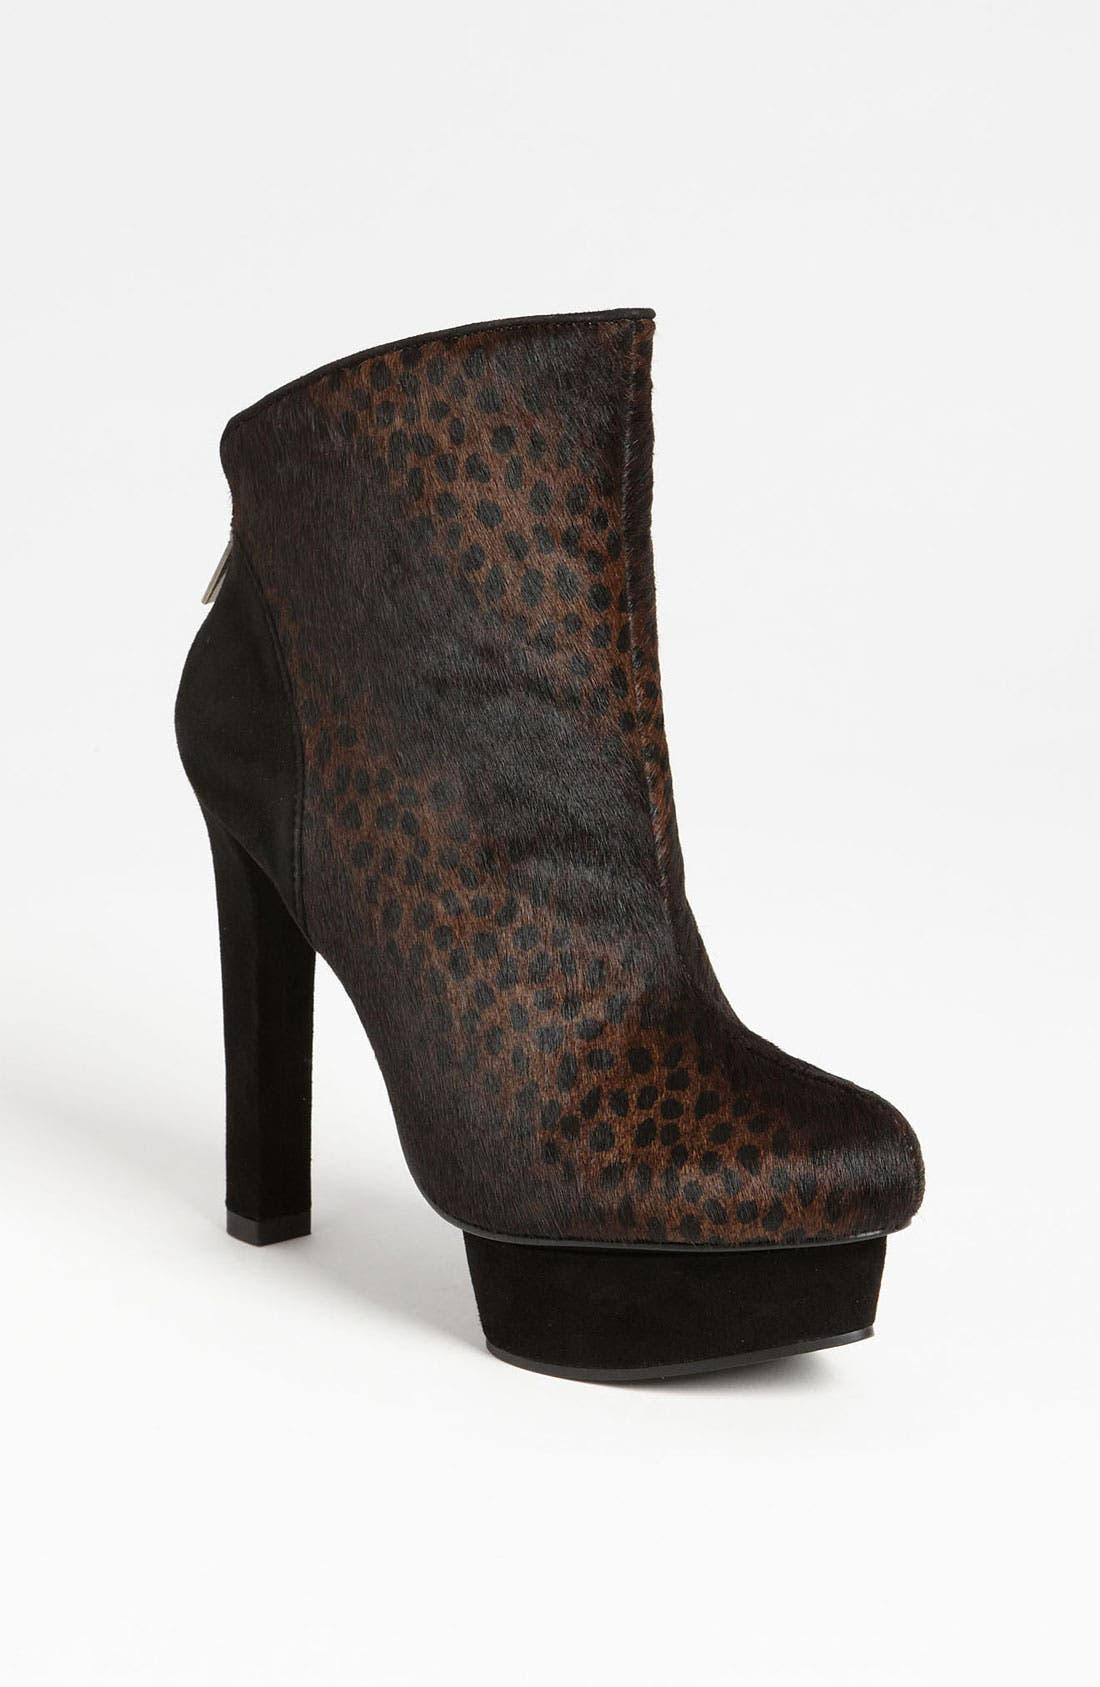 Alternate Image 1 Selected - Pelle Moda 'Pally' Bootie